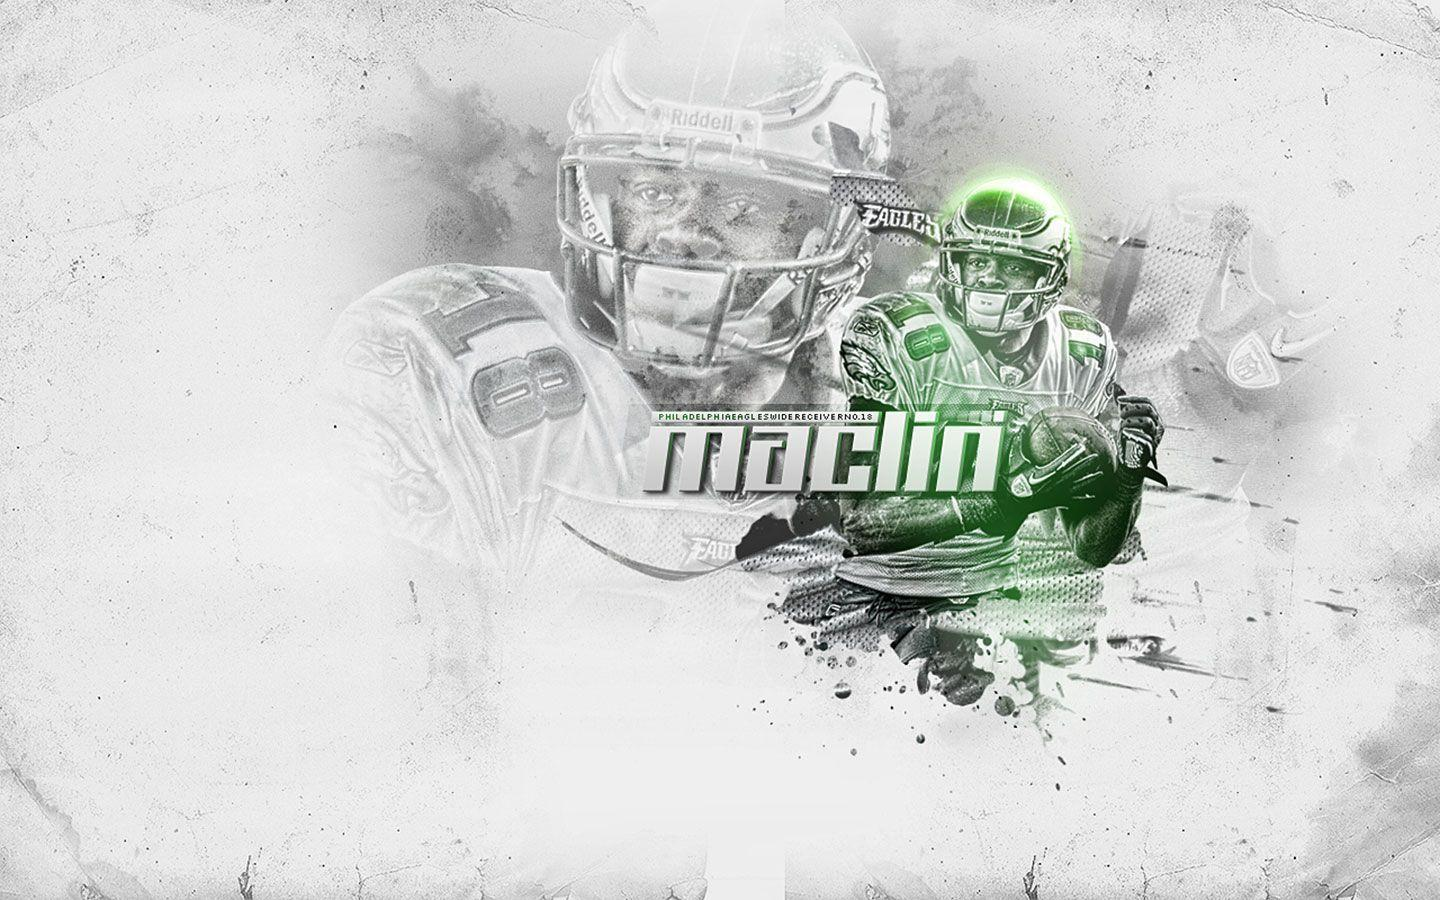 Free Wallpapers - Jeremy Maclin Philadelphia Eagles wallpaper